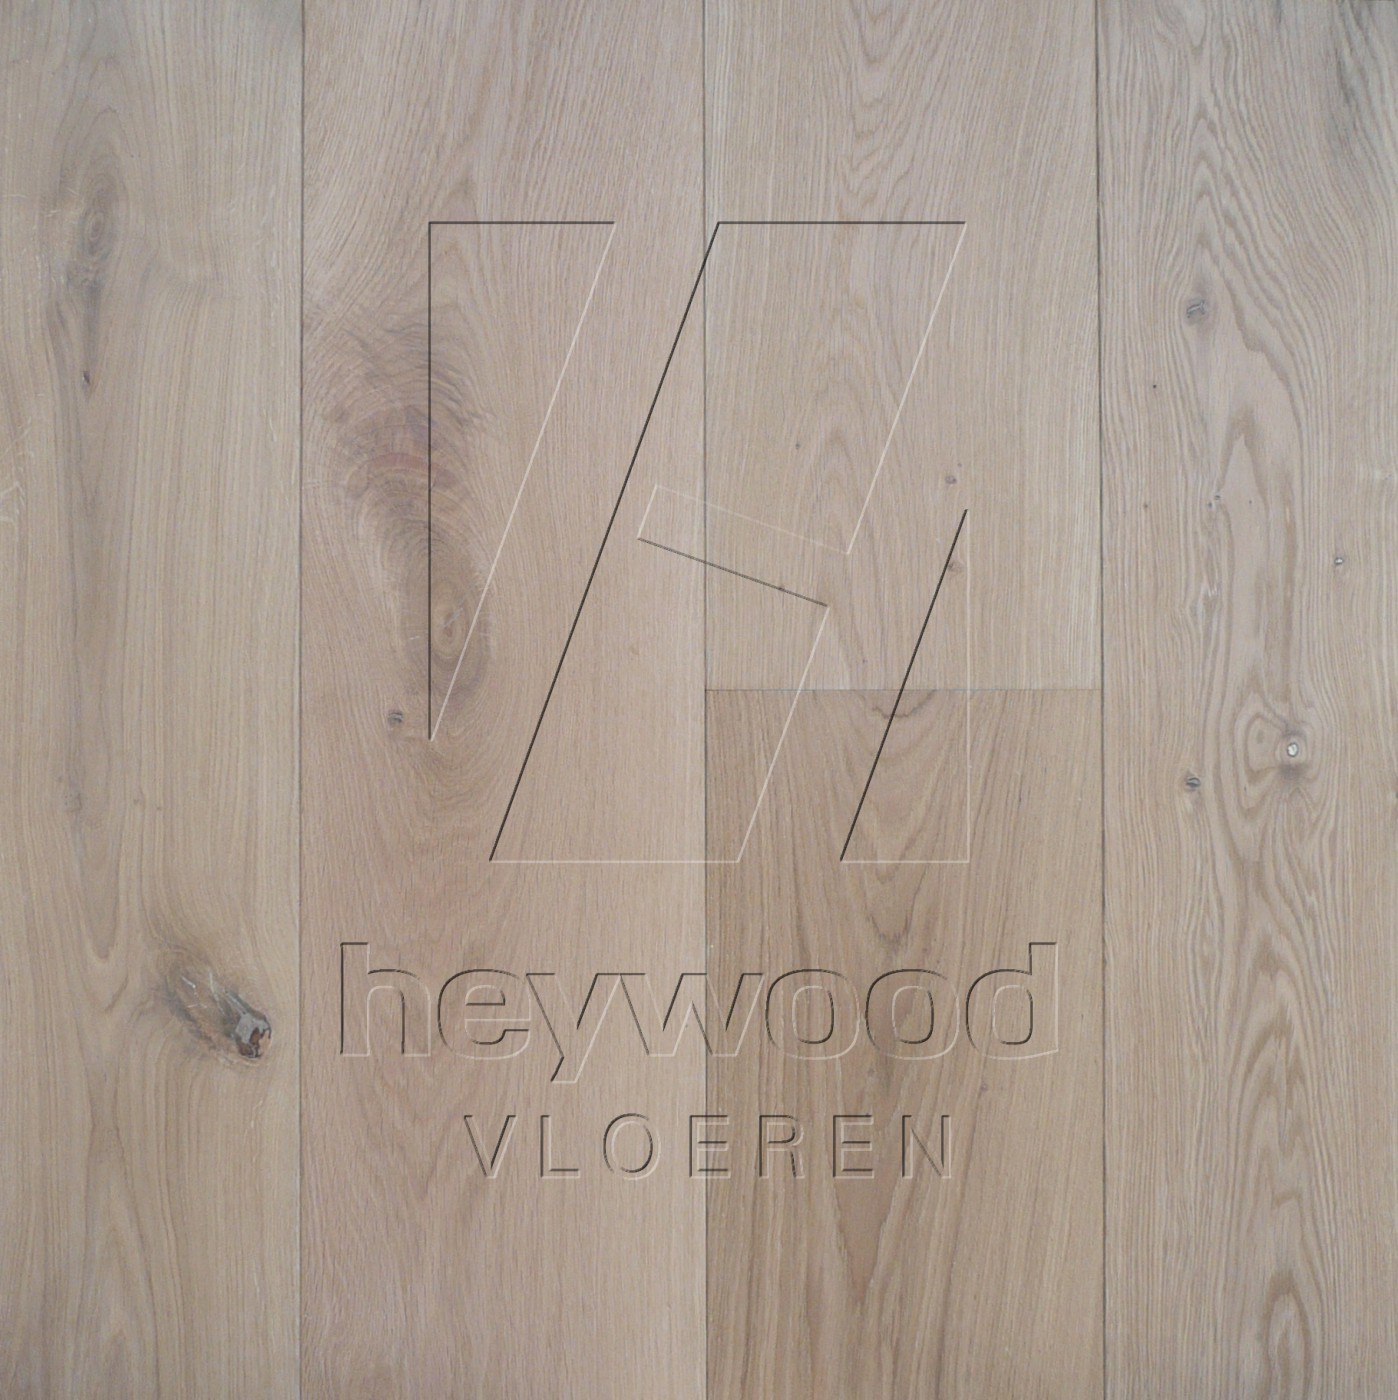 Virgin (invisible look) in European Oak Character of Bespoke Wooden Floors